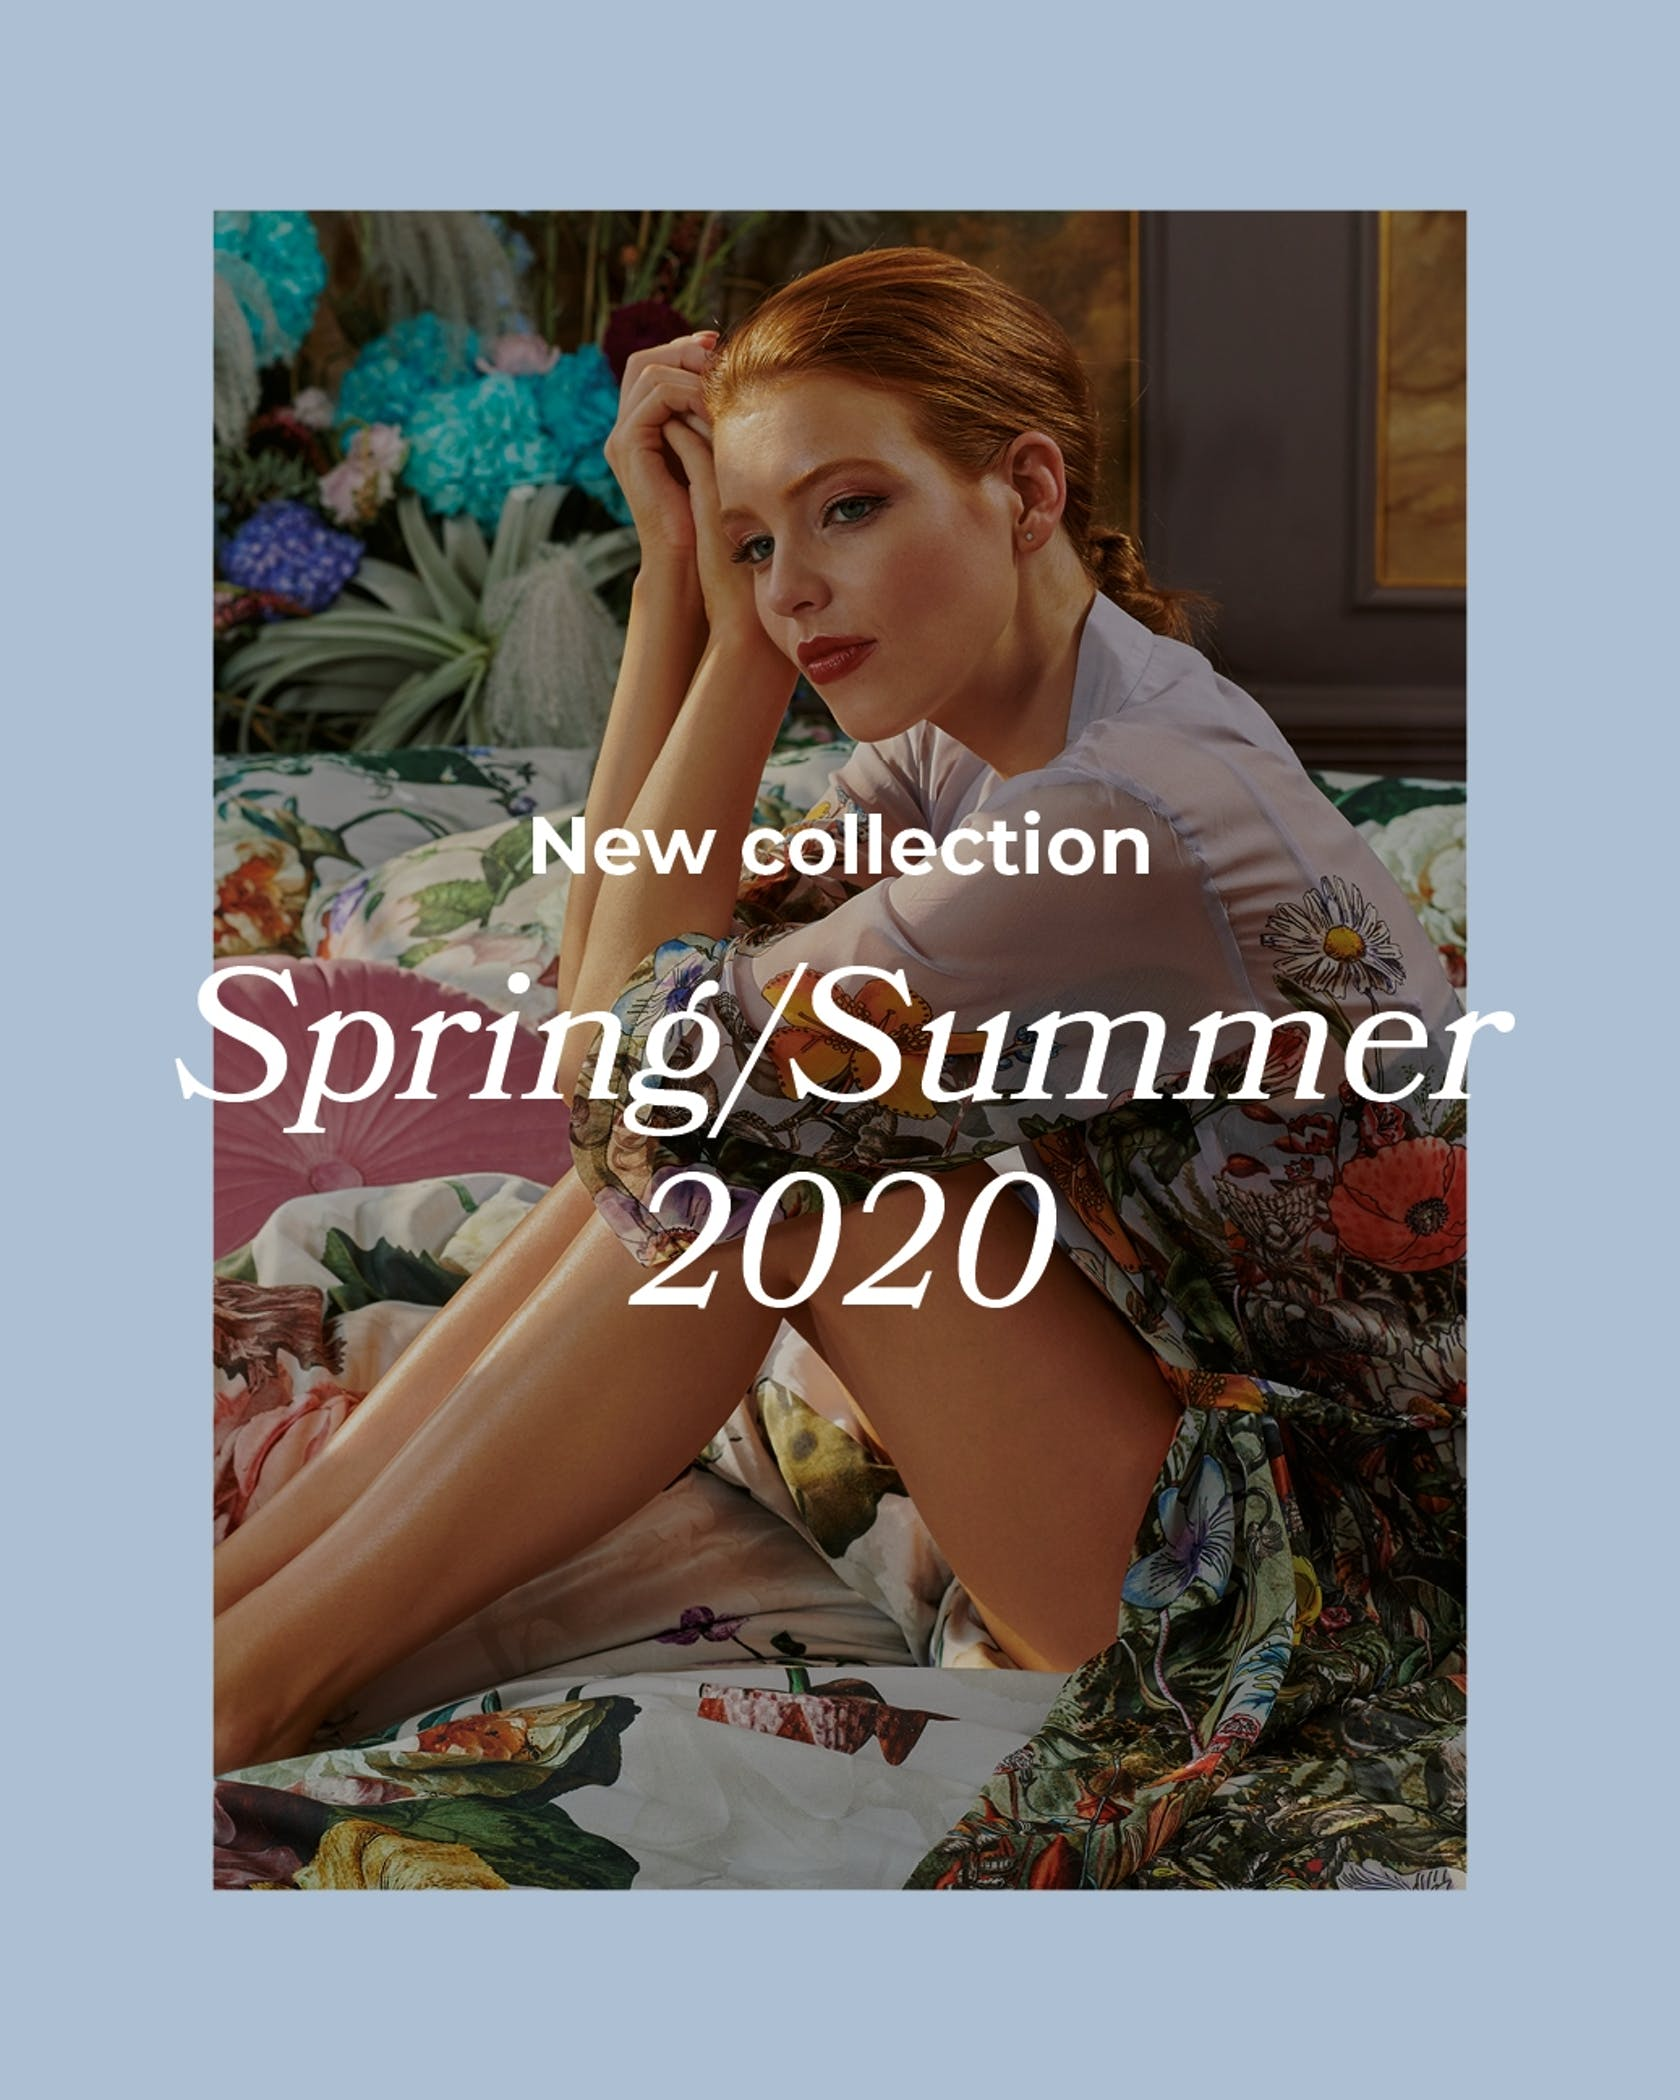 New collection! ESSENZA Spring/Summer '20